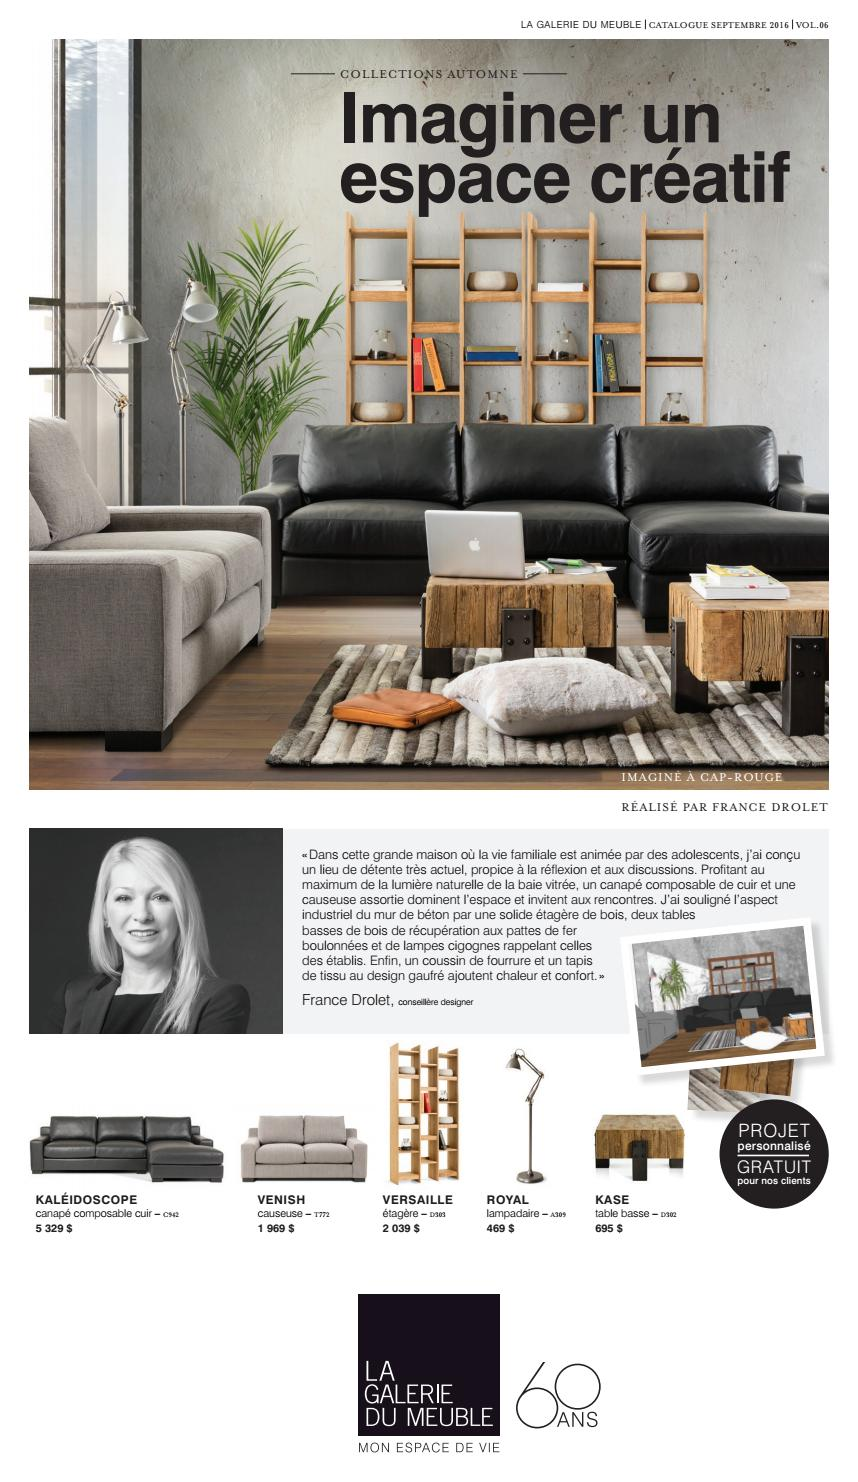 la galerie du meuble catalogue vol 6 by la galerie du meuble issuu. Black Bedroom Furniture Sets. Home Design Ideas